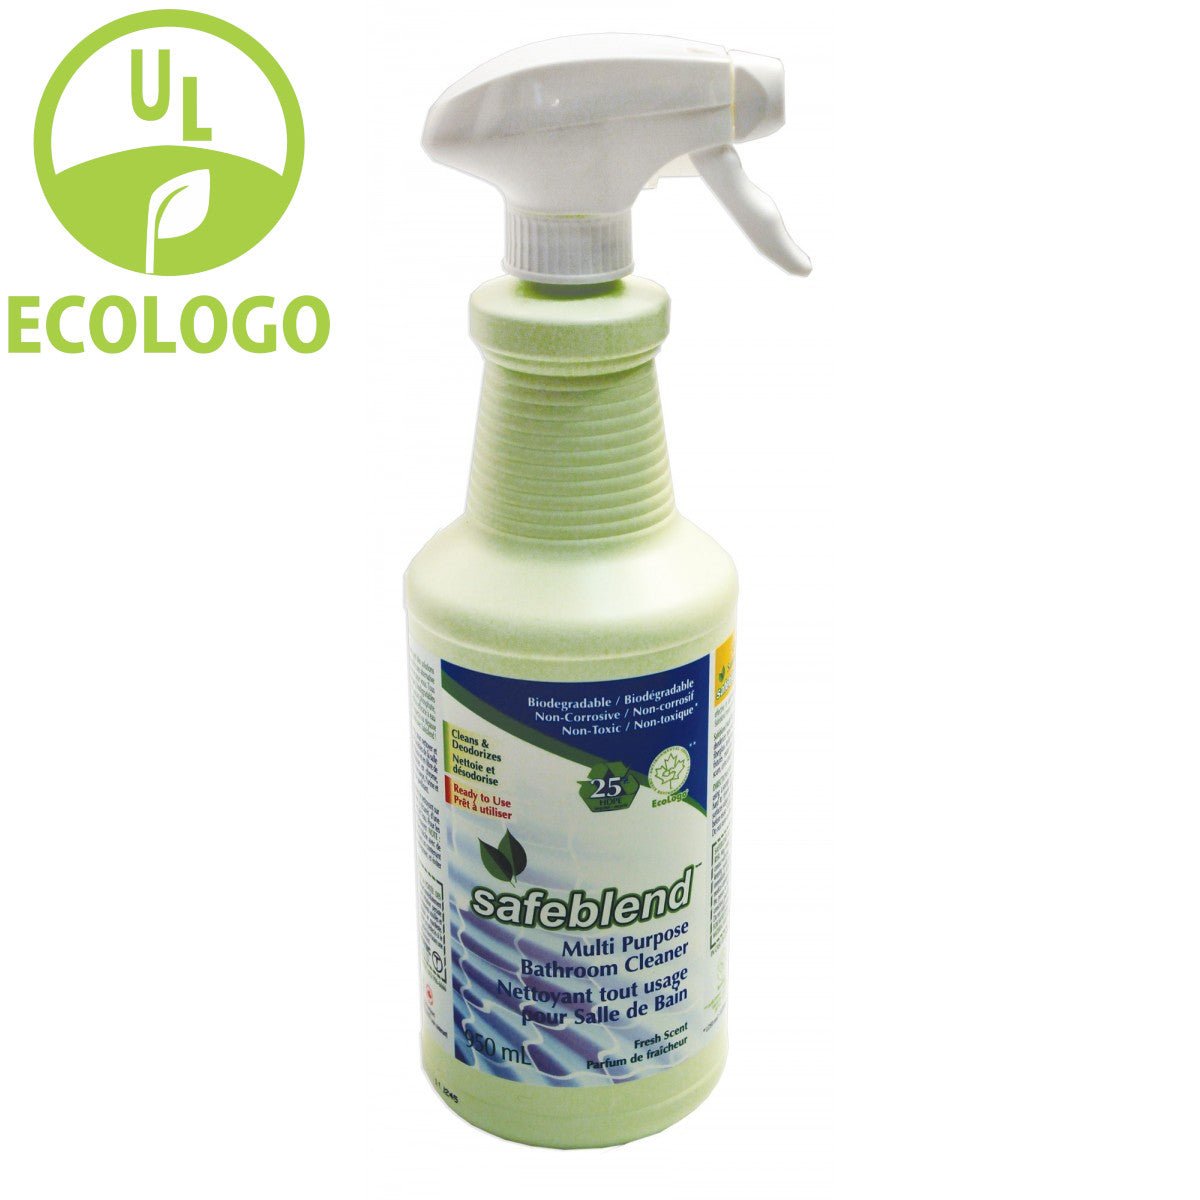 Safeblend Ready to Use EcoLogo Bathroom Cleaner - 950ml - Super Vacs